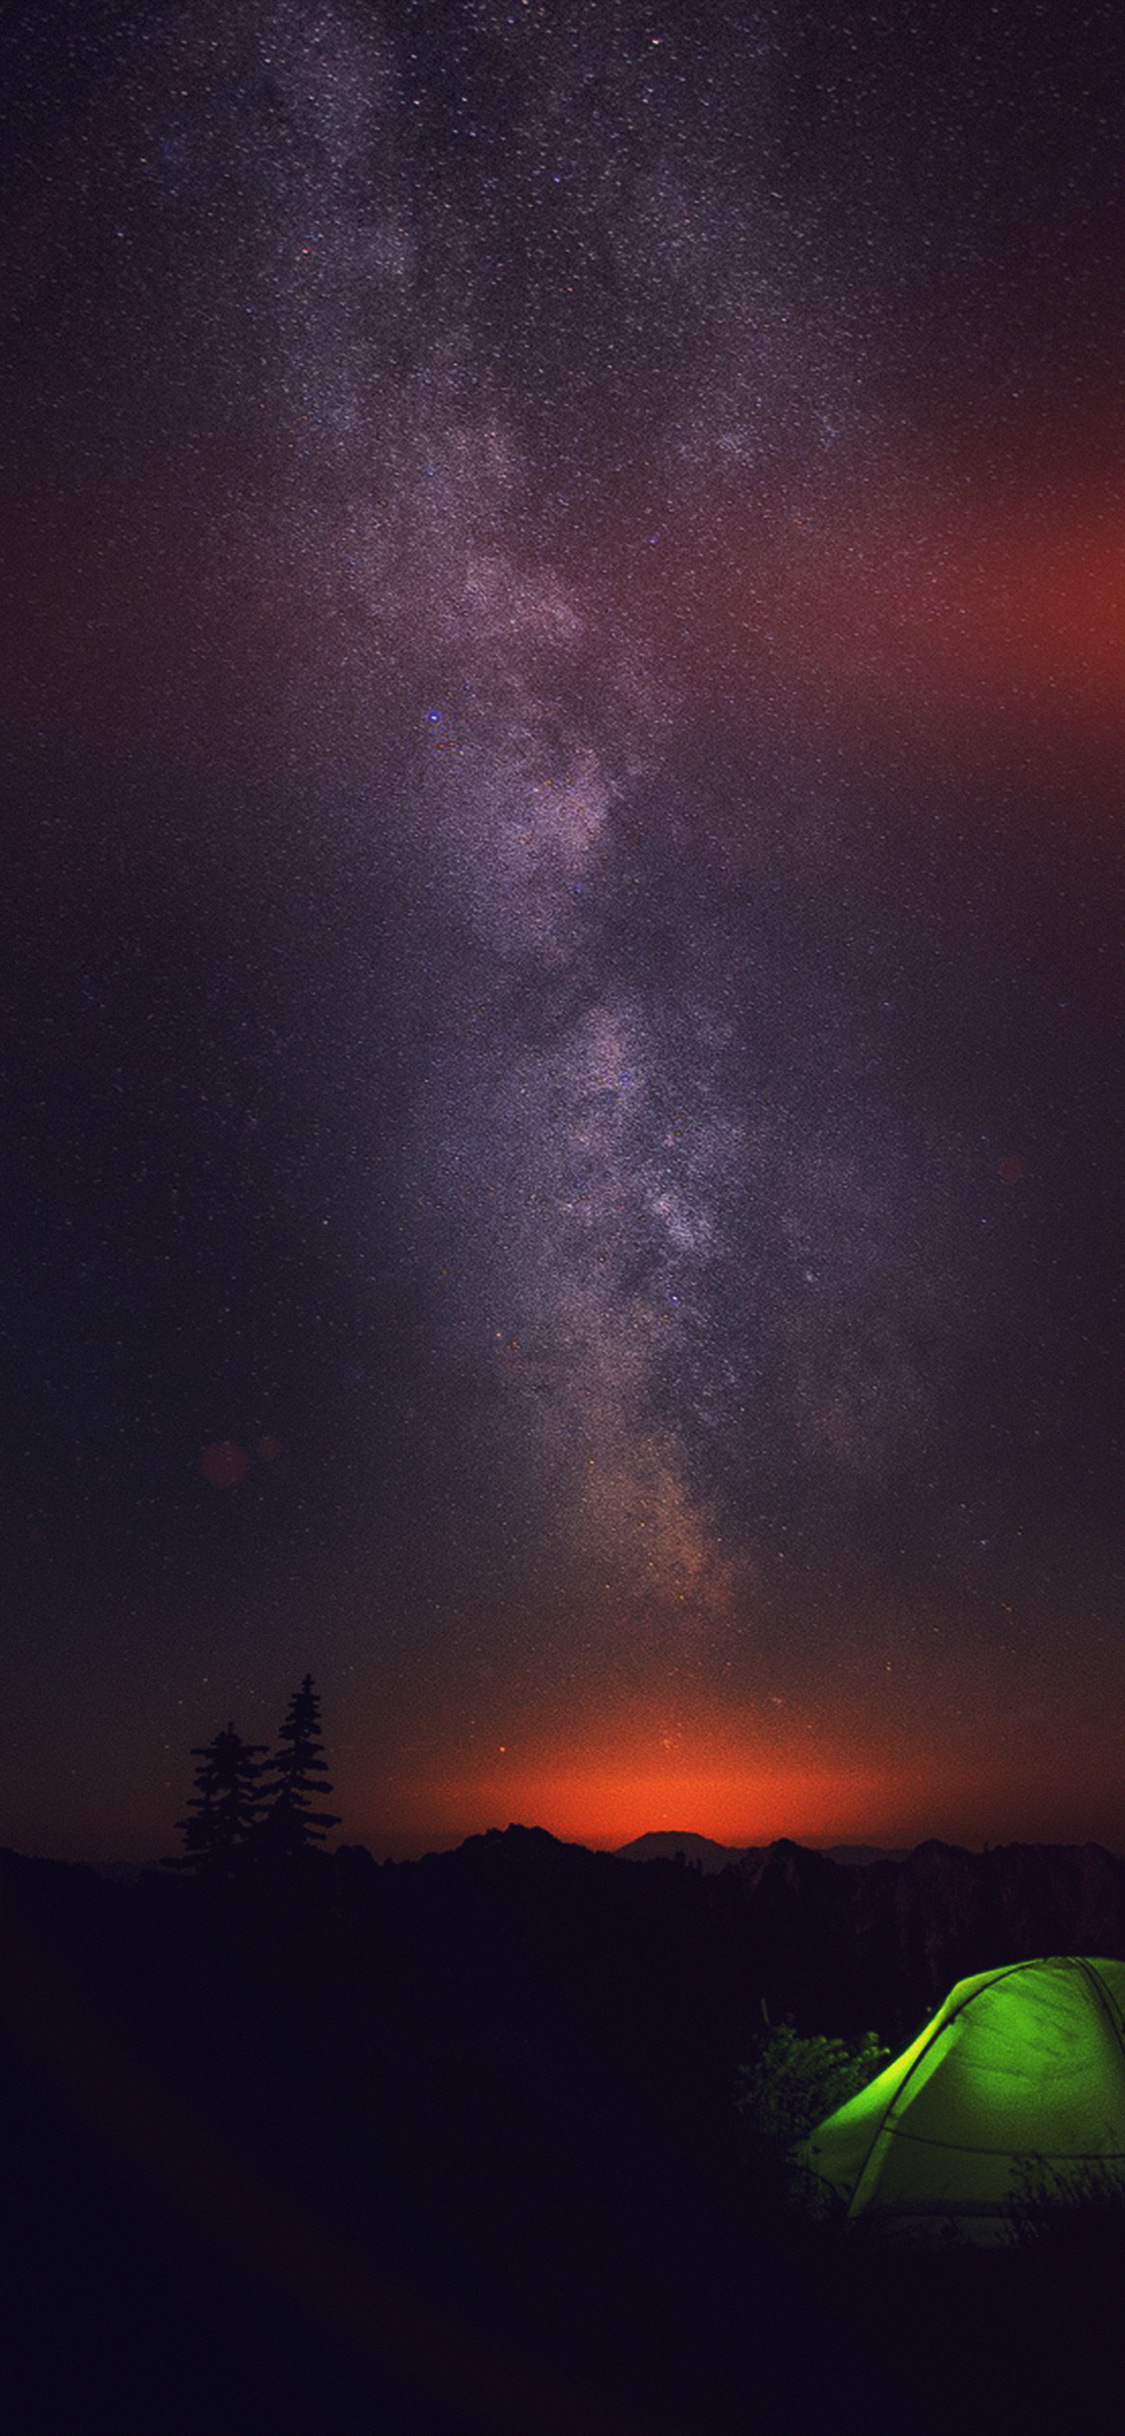 Iphonexpapers Com Iphone X Wallpaper My85 Camping Night Star Galaxy Milky Sky Dark Space